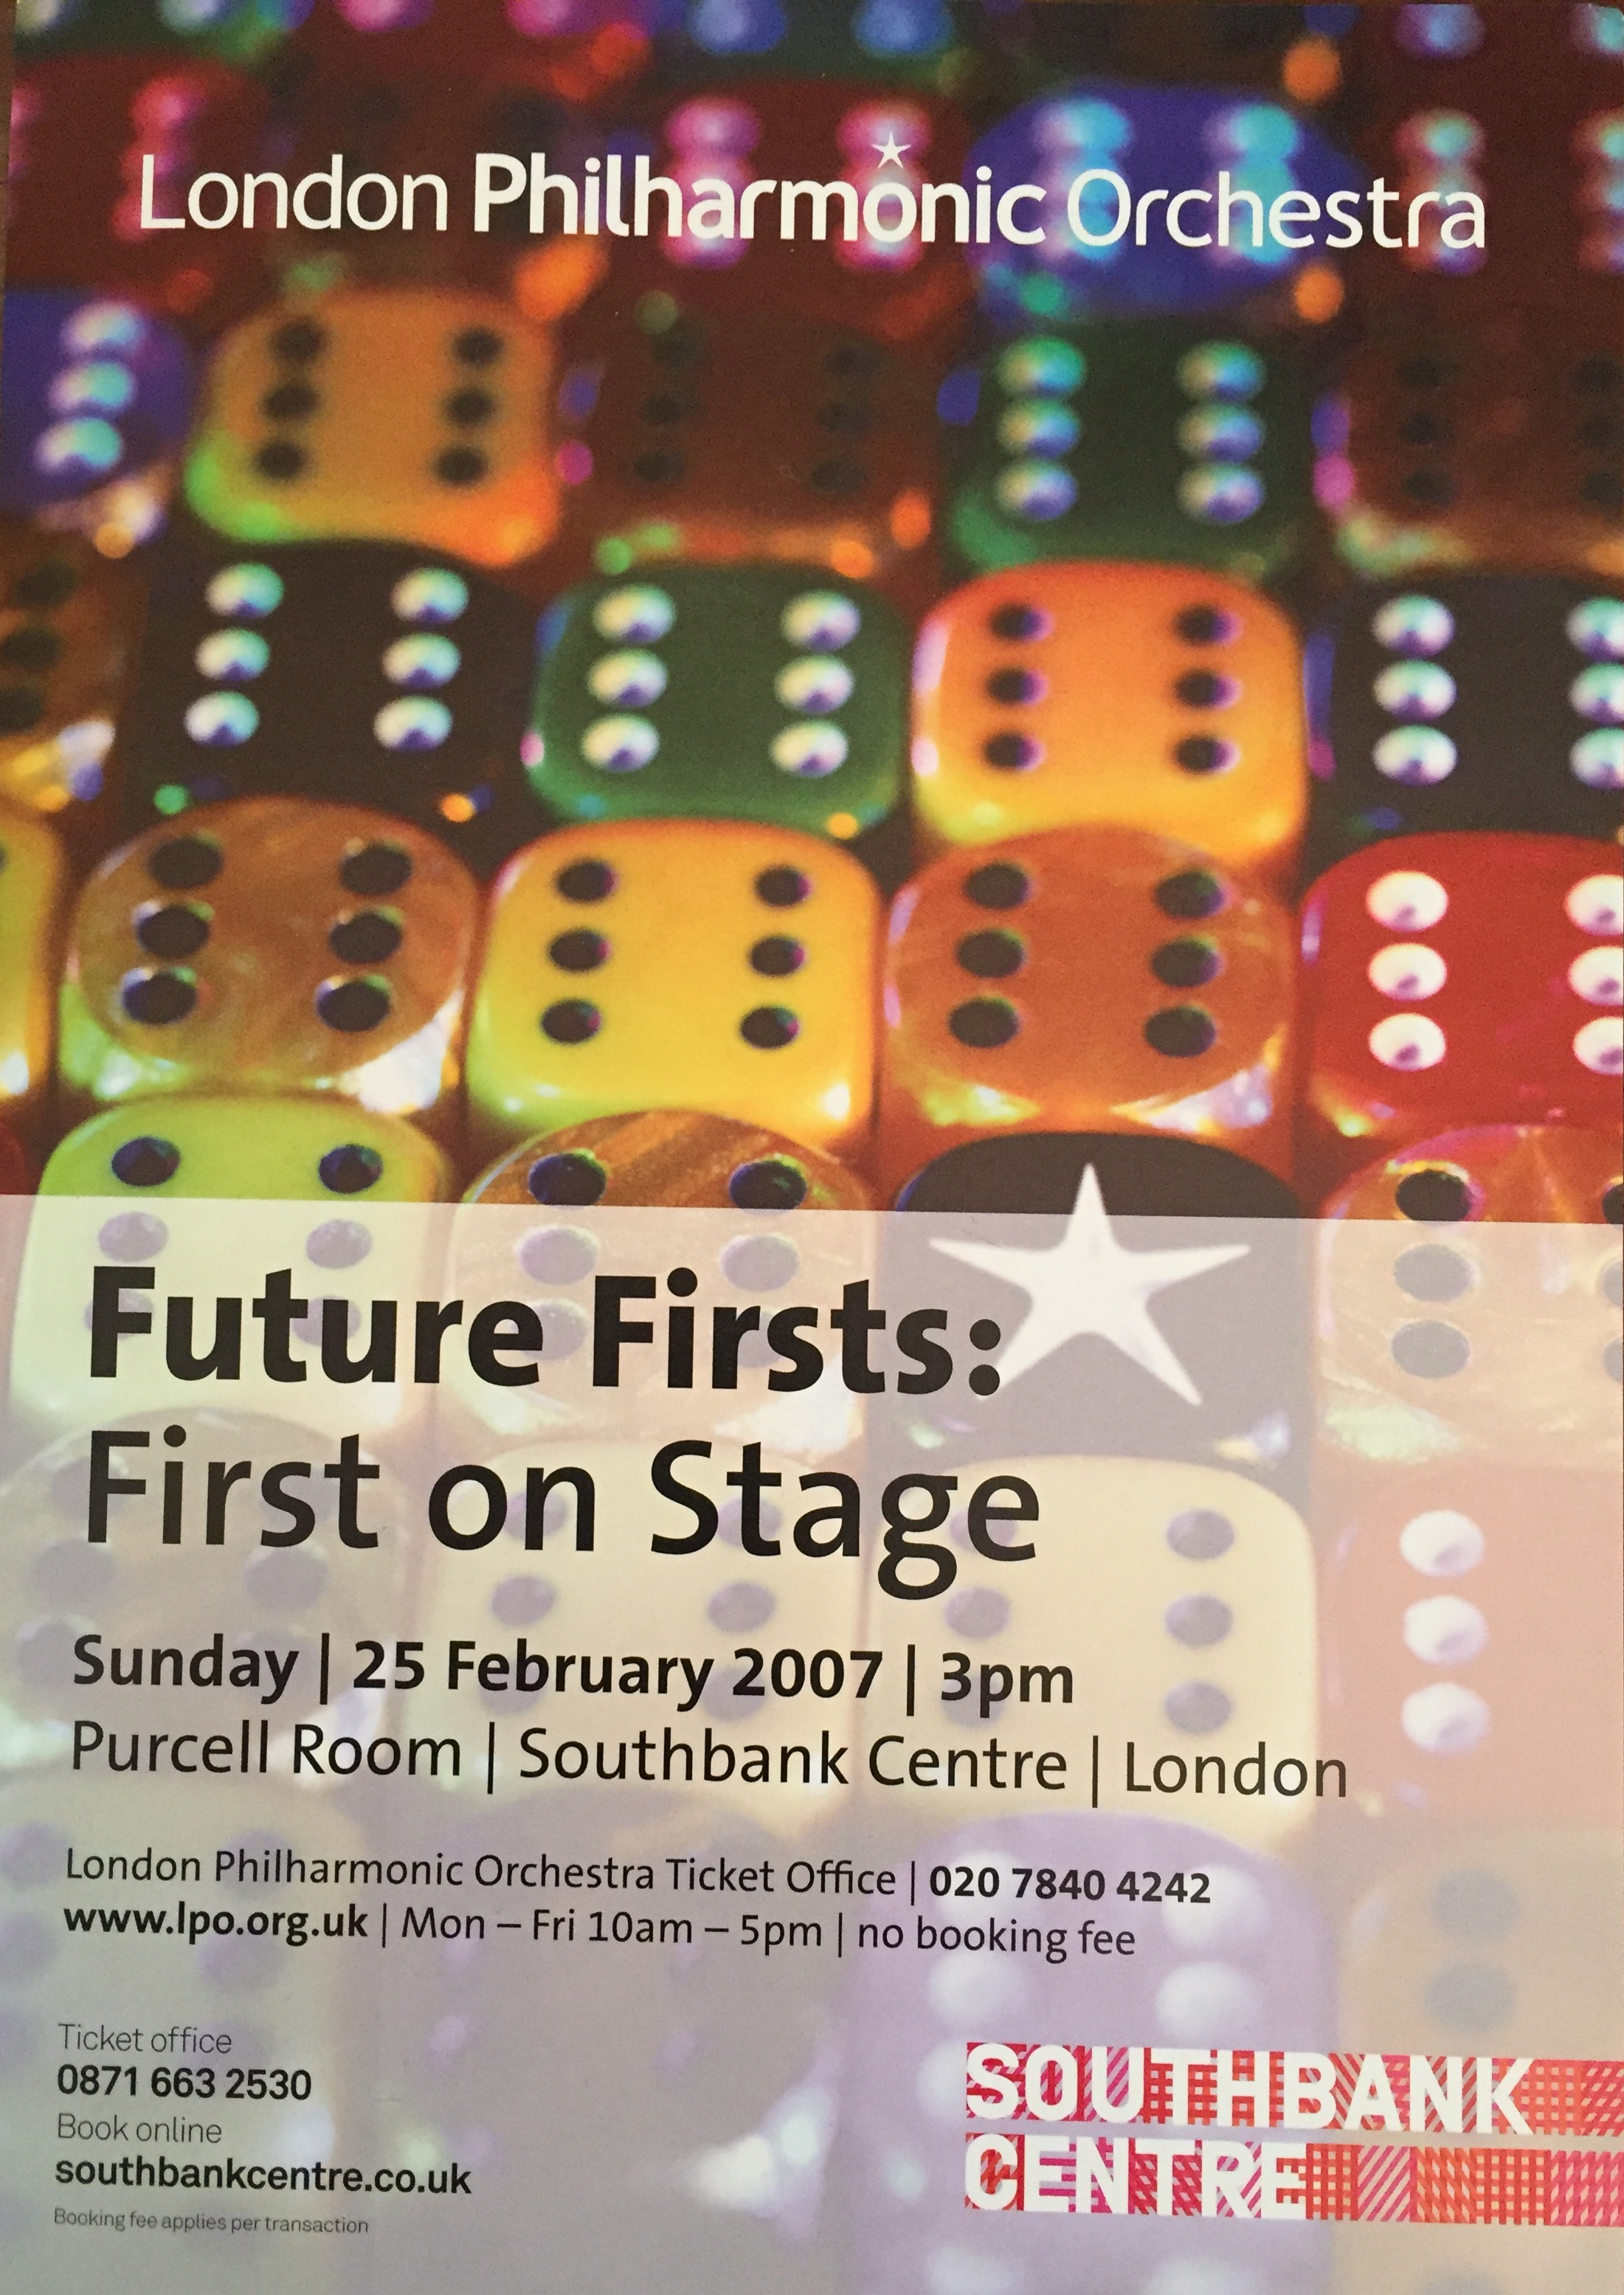 London Philharmonic Orchestra Future Firsts Concert Queen Elizabeth Hall-Anna Stokes Flute